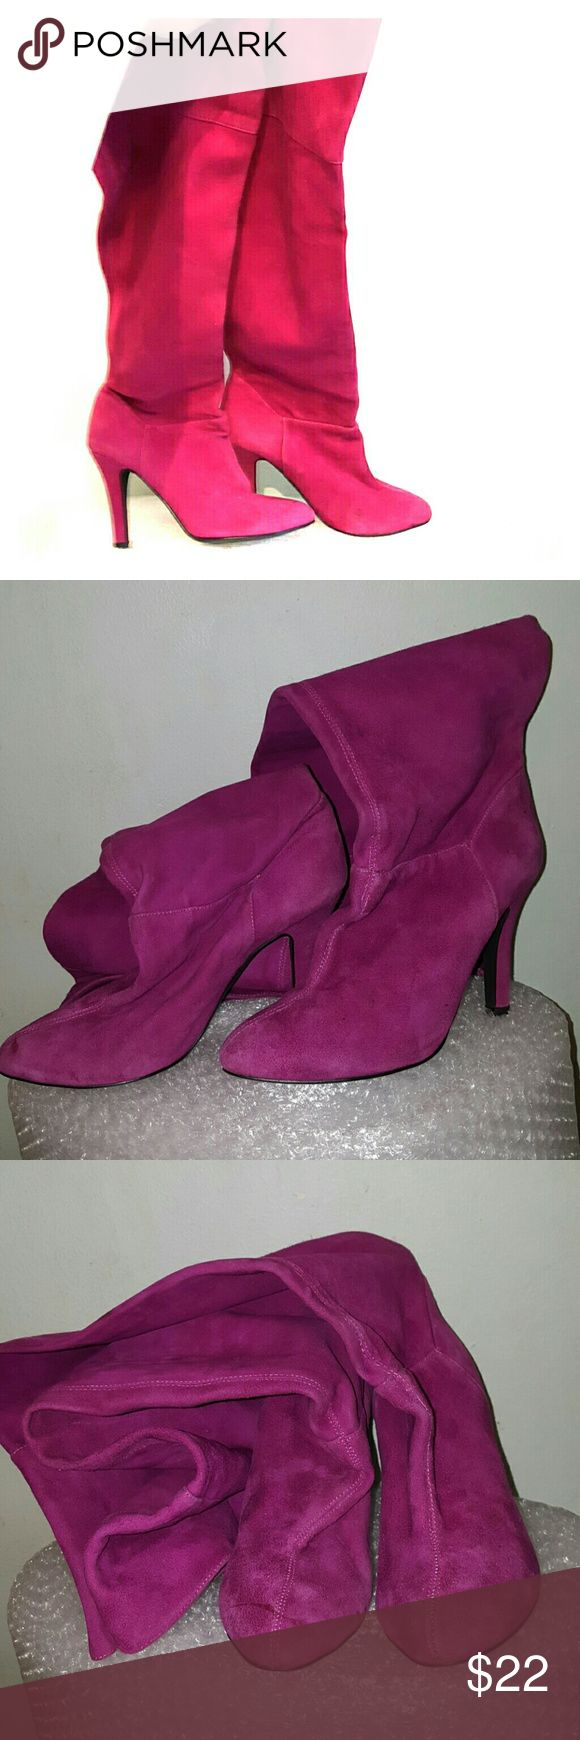 "Colin Stuart size 10 M 4"" covered heel. 20 3/4"" shaft when is fully unfolded. 17-17.5"" circumference. Pretty raspberry suede. Occasional dirt marks. Colin Stuart Shoes Over the Knee Boots"